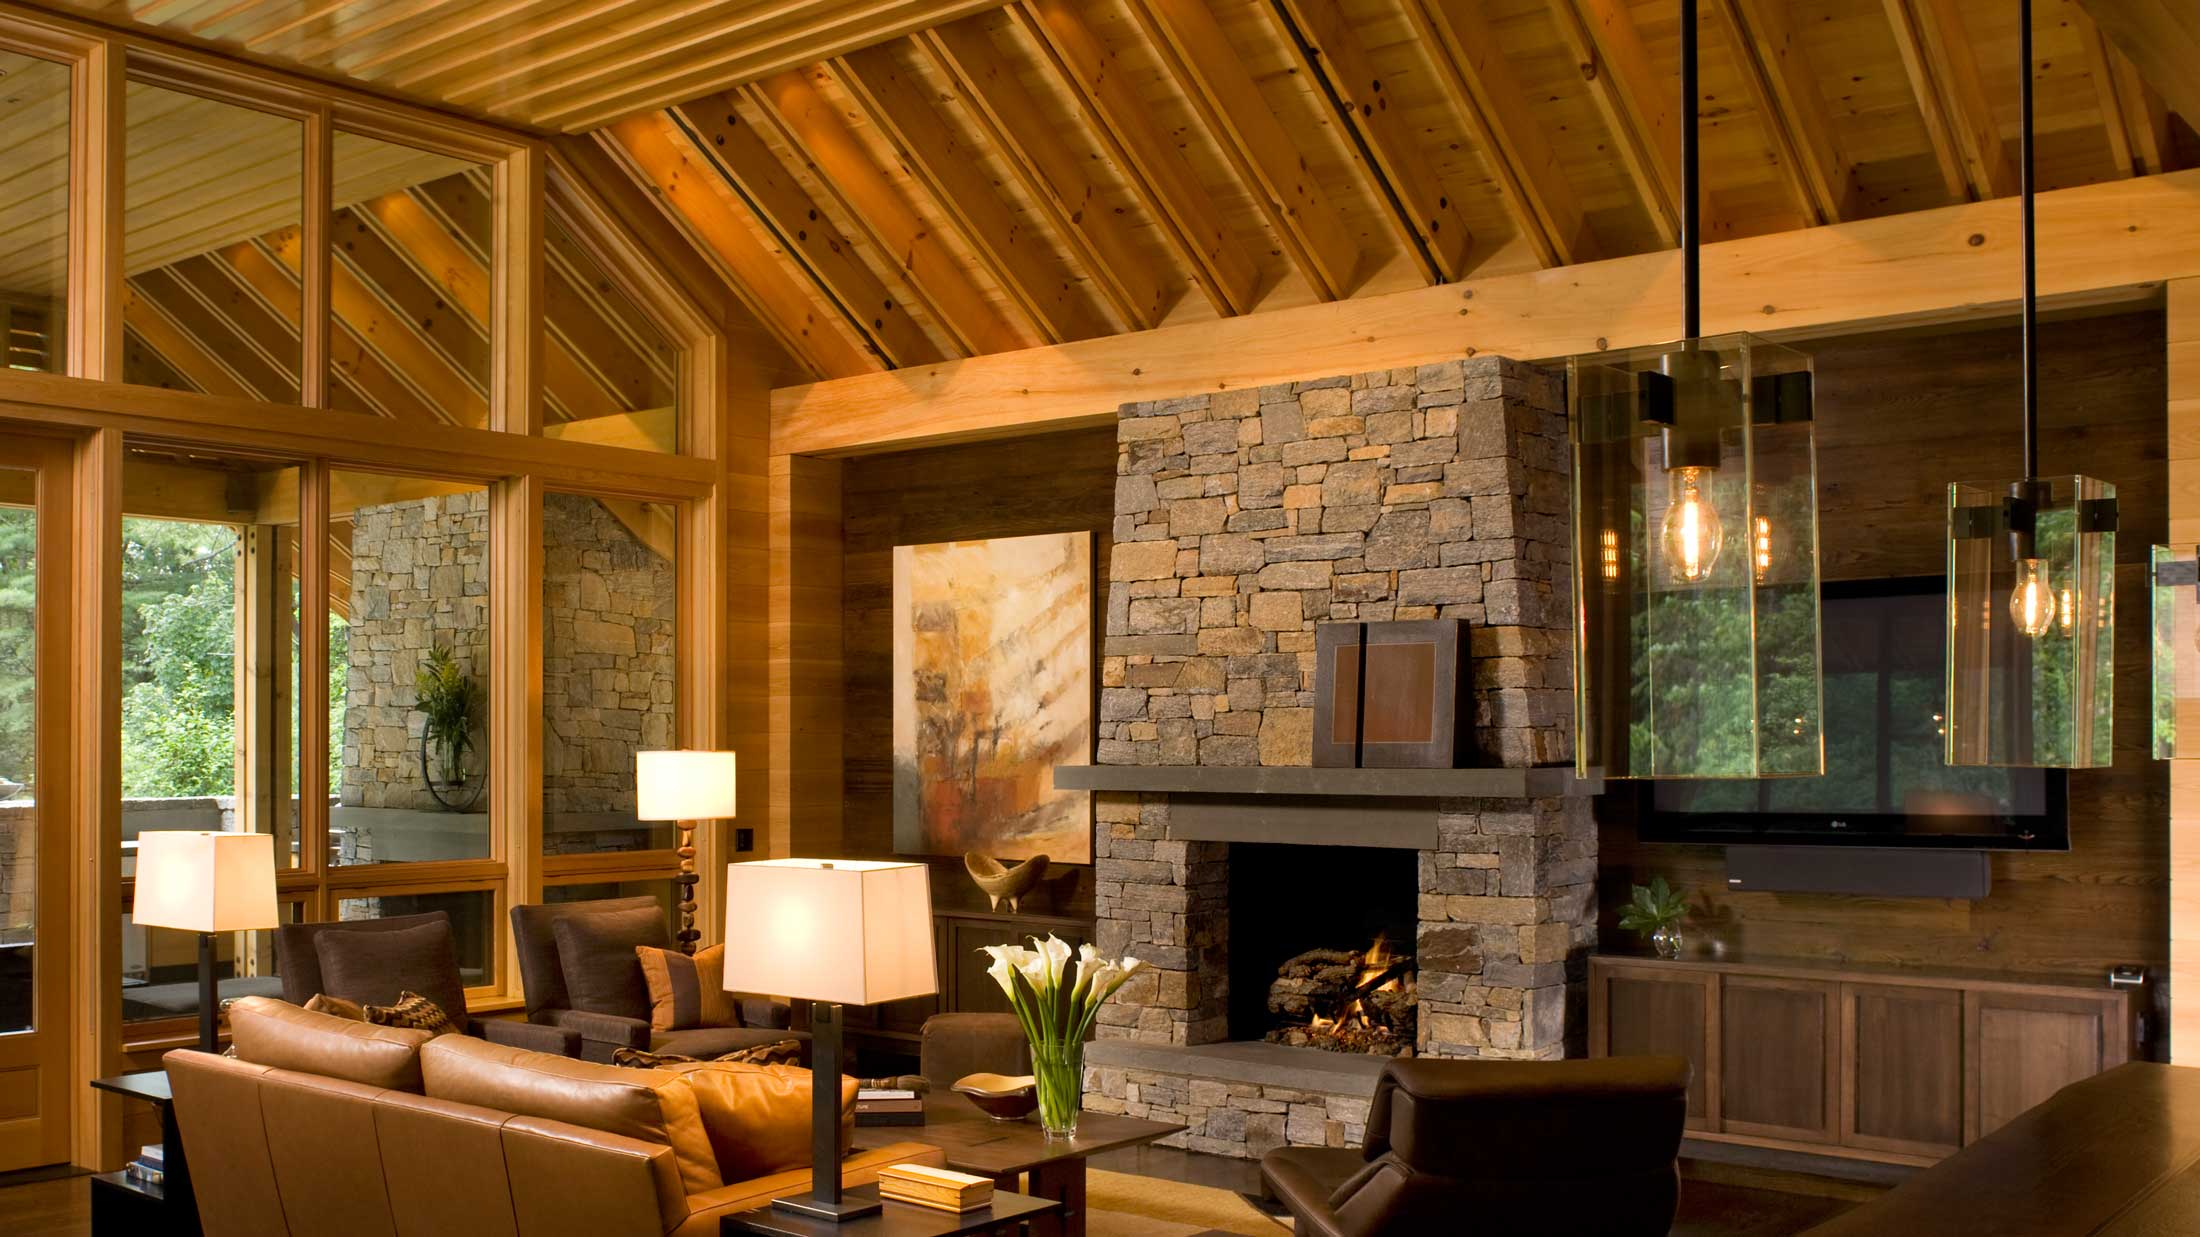 wood ceilings and stonework fireplace